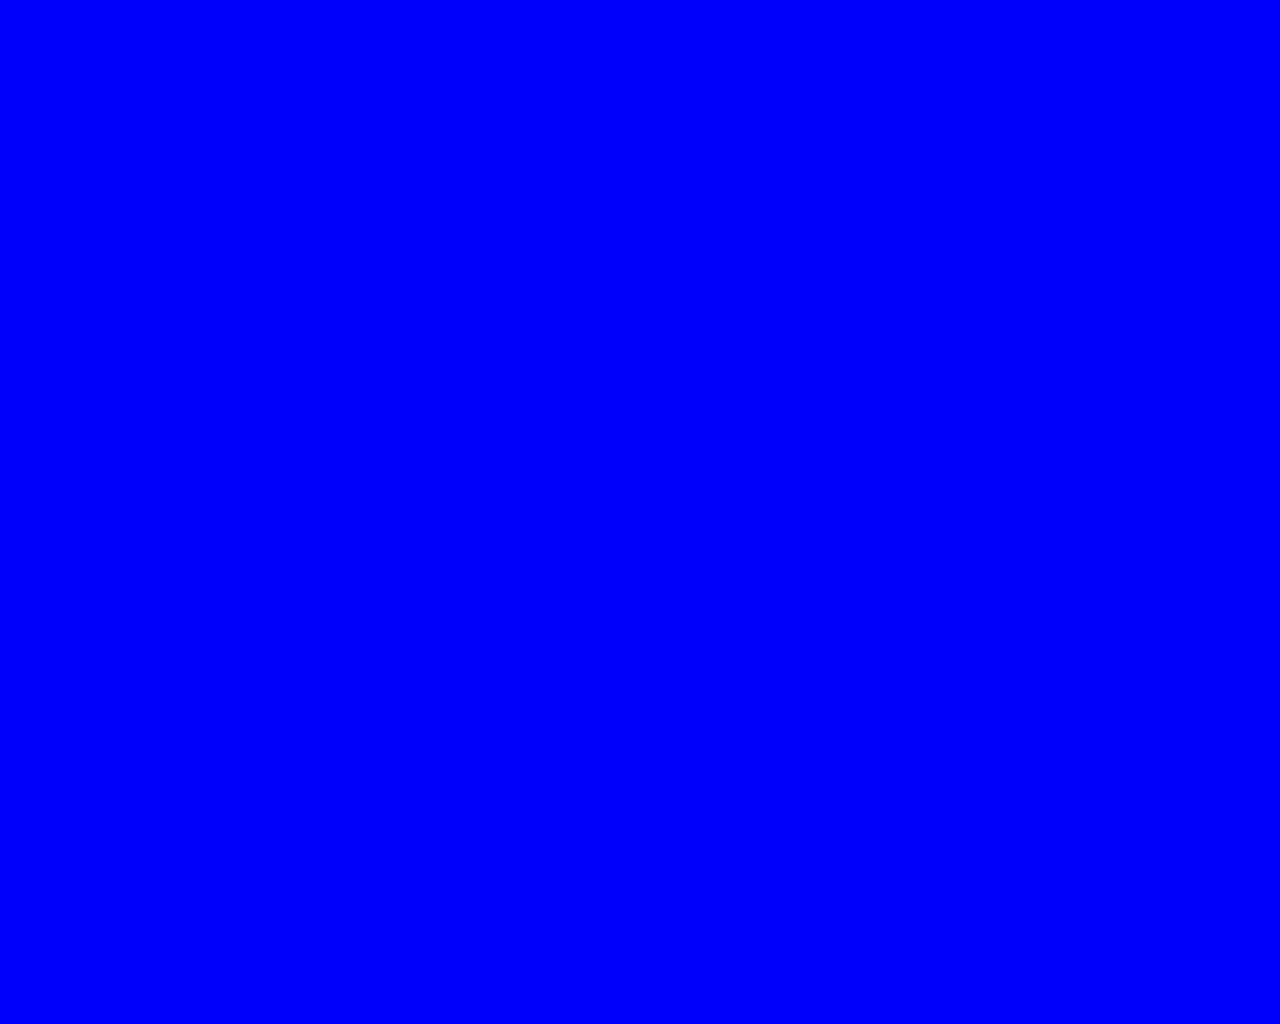 1280x1024 Blue Solid Color Background